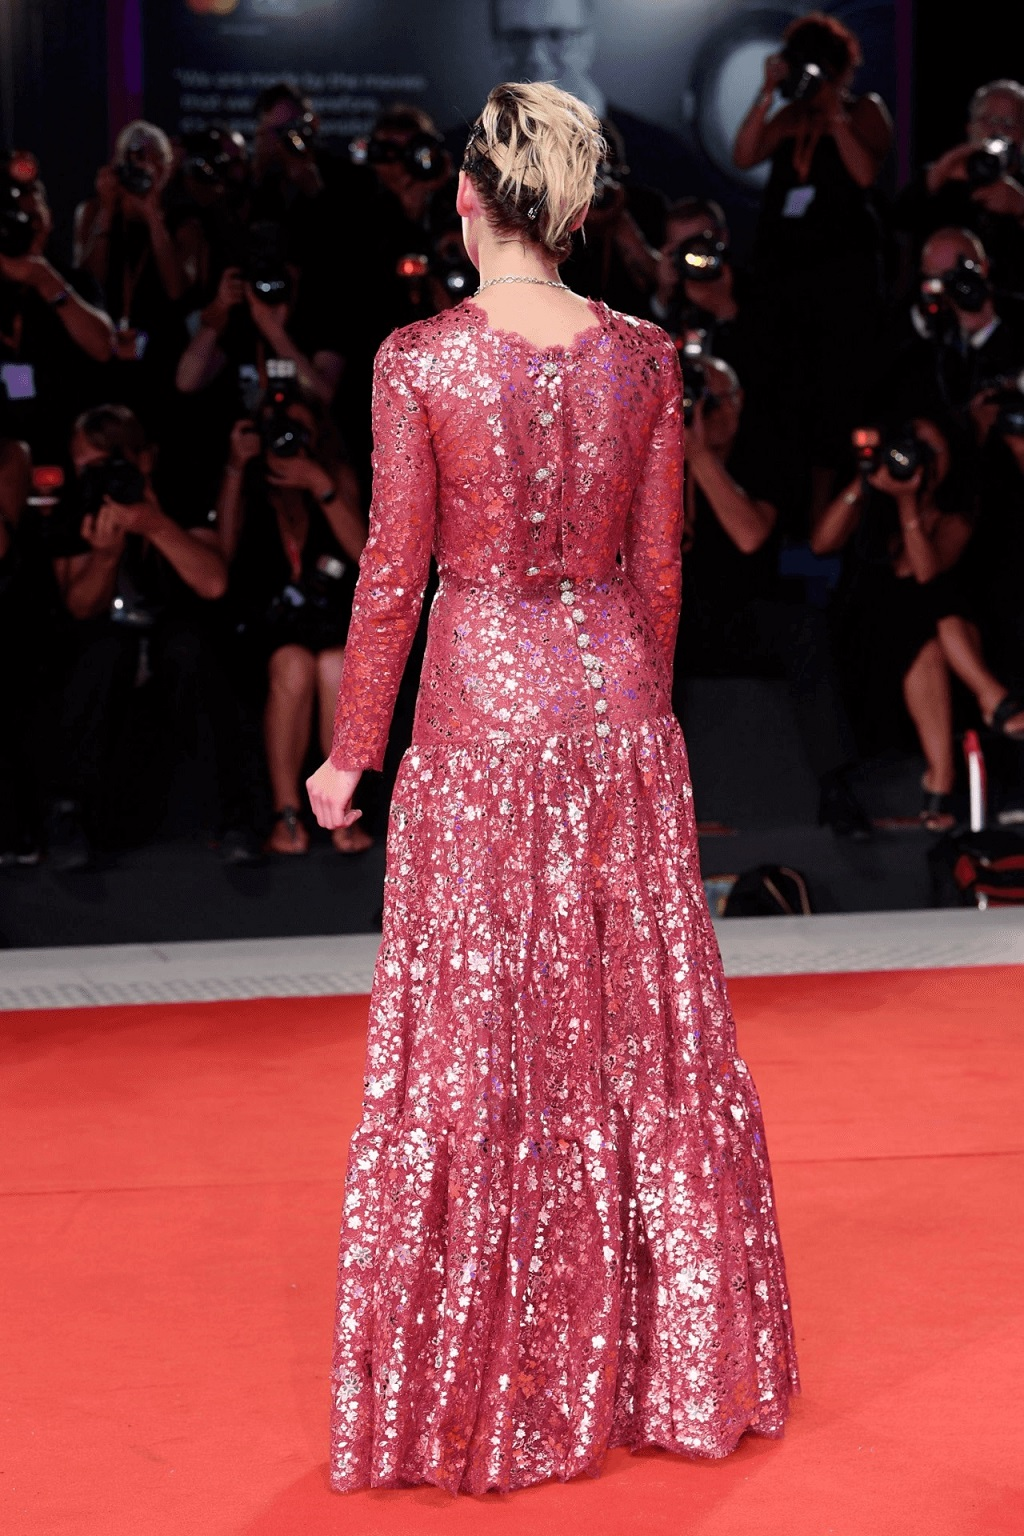 Kristen Stewart dazzles on the red carpet in a fuchsia dress at Seberg premiere